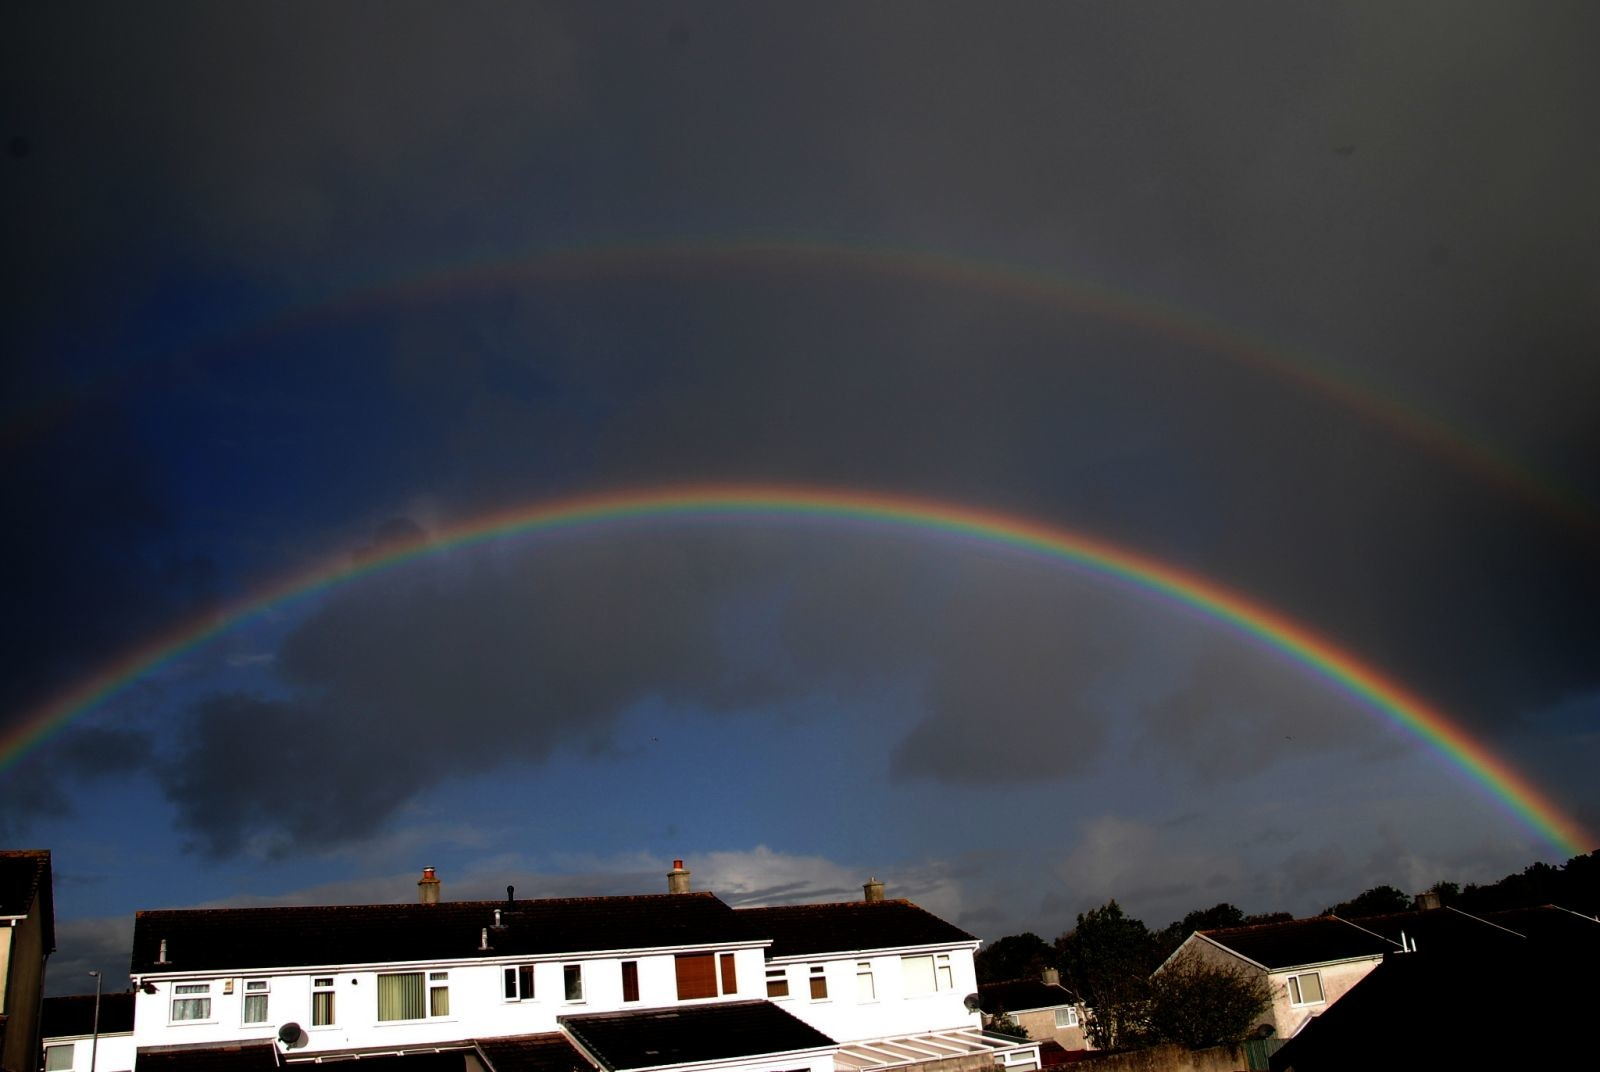 Double rainbow this morning - just